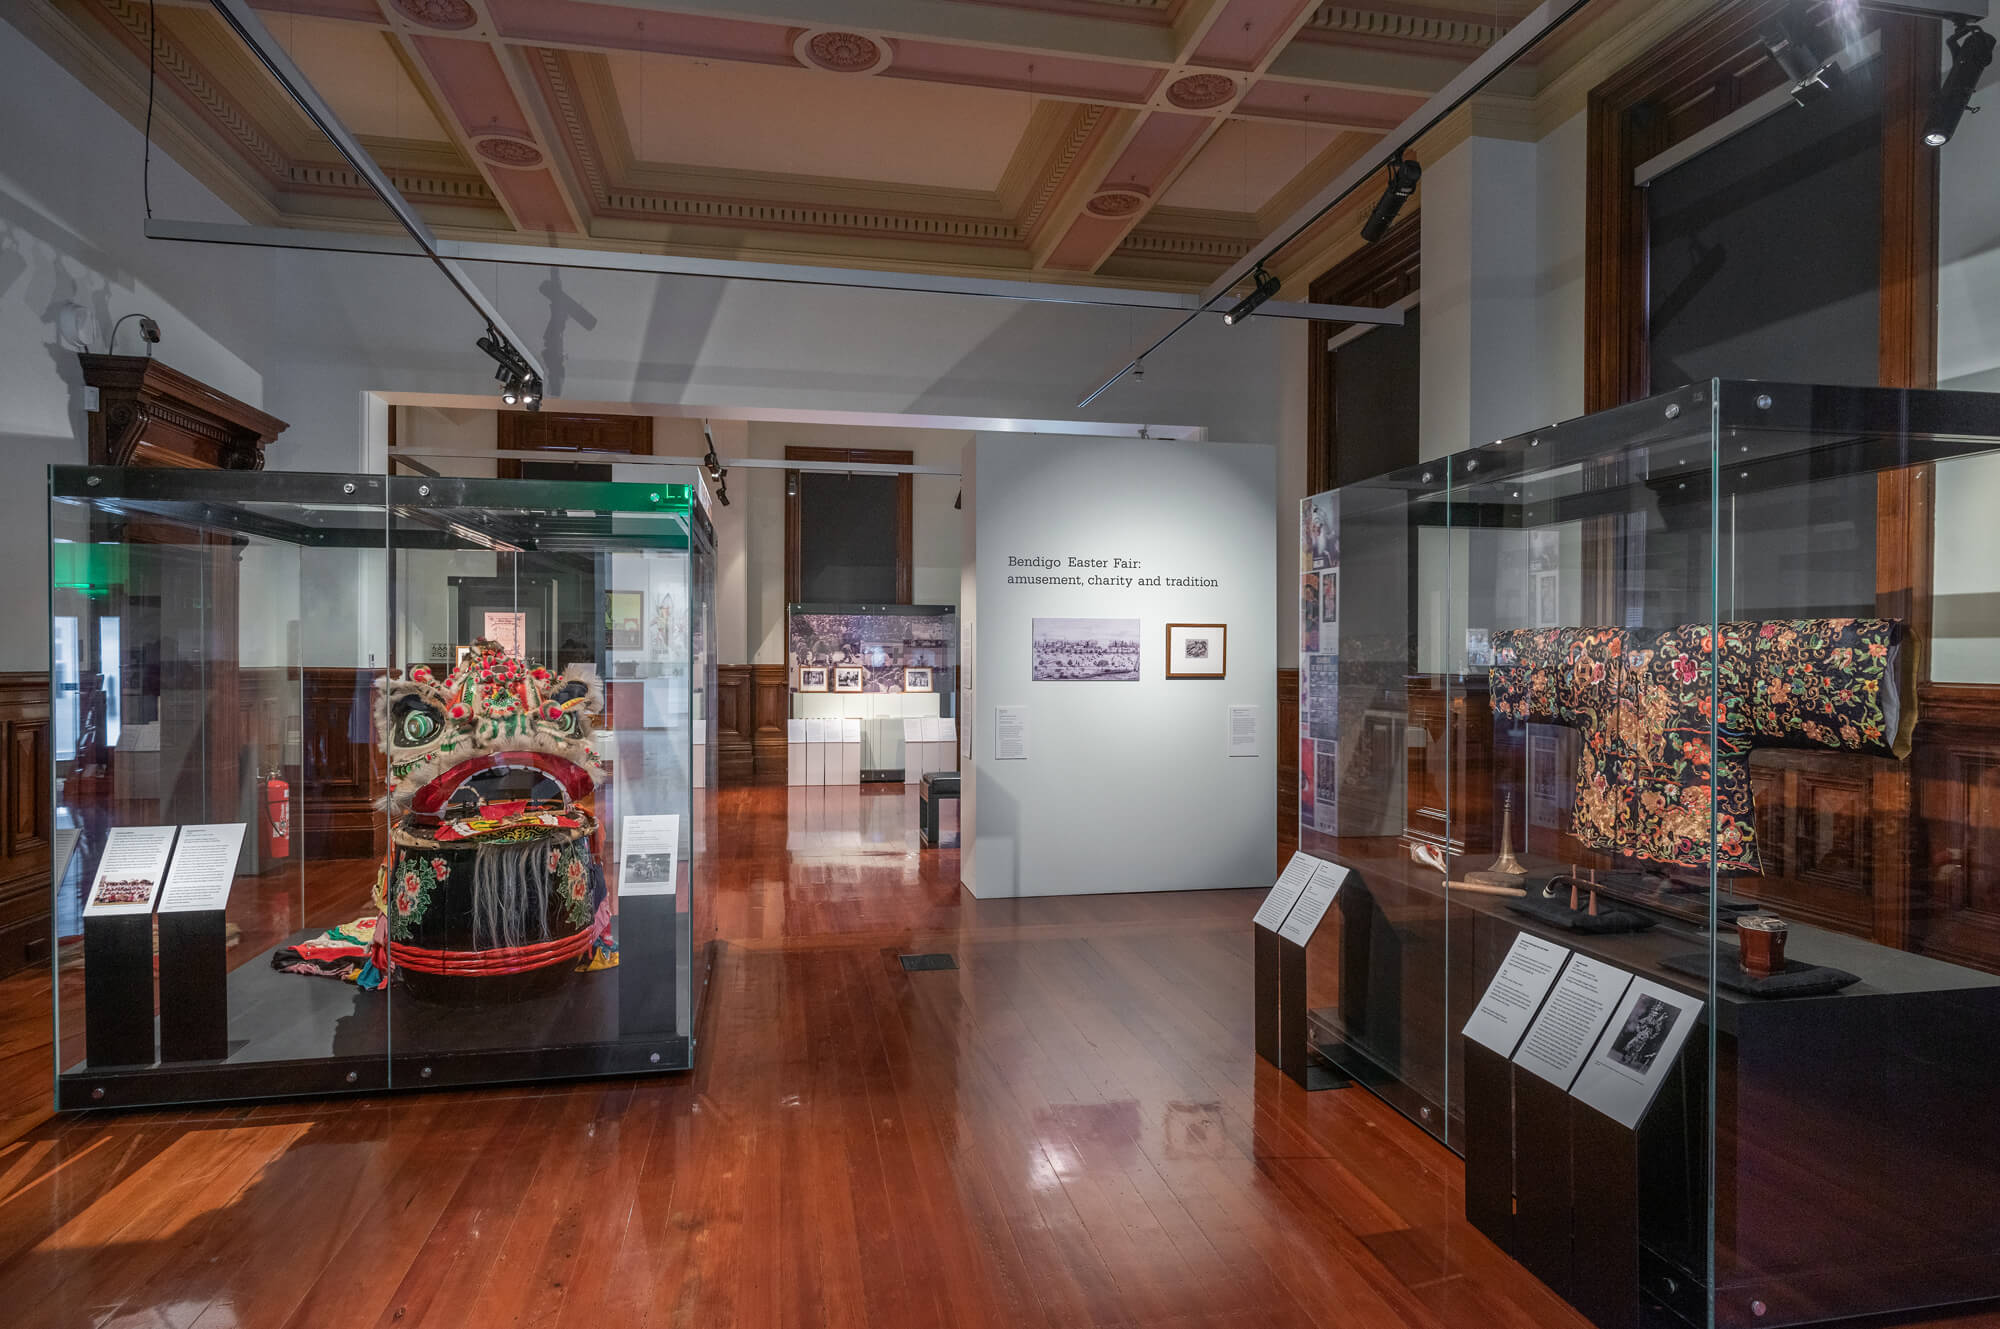 Bendigo Easter Fair: amusement, charity and tradition, installation view, Post Office Gallery. Photograph: Ian Hill